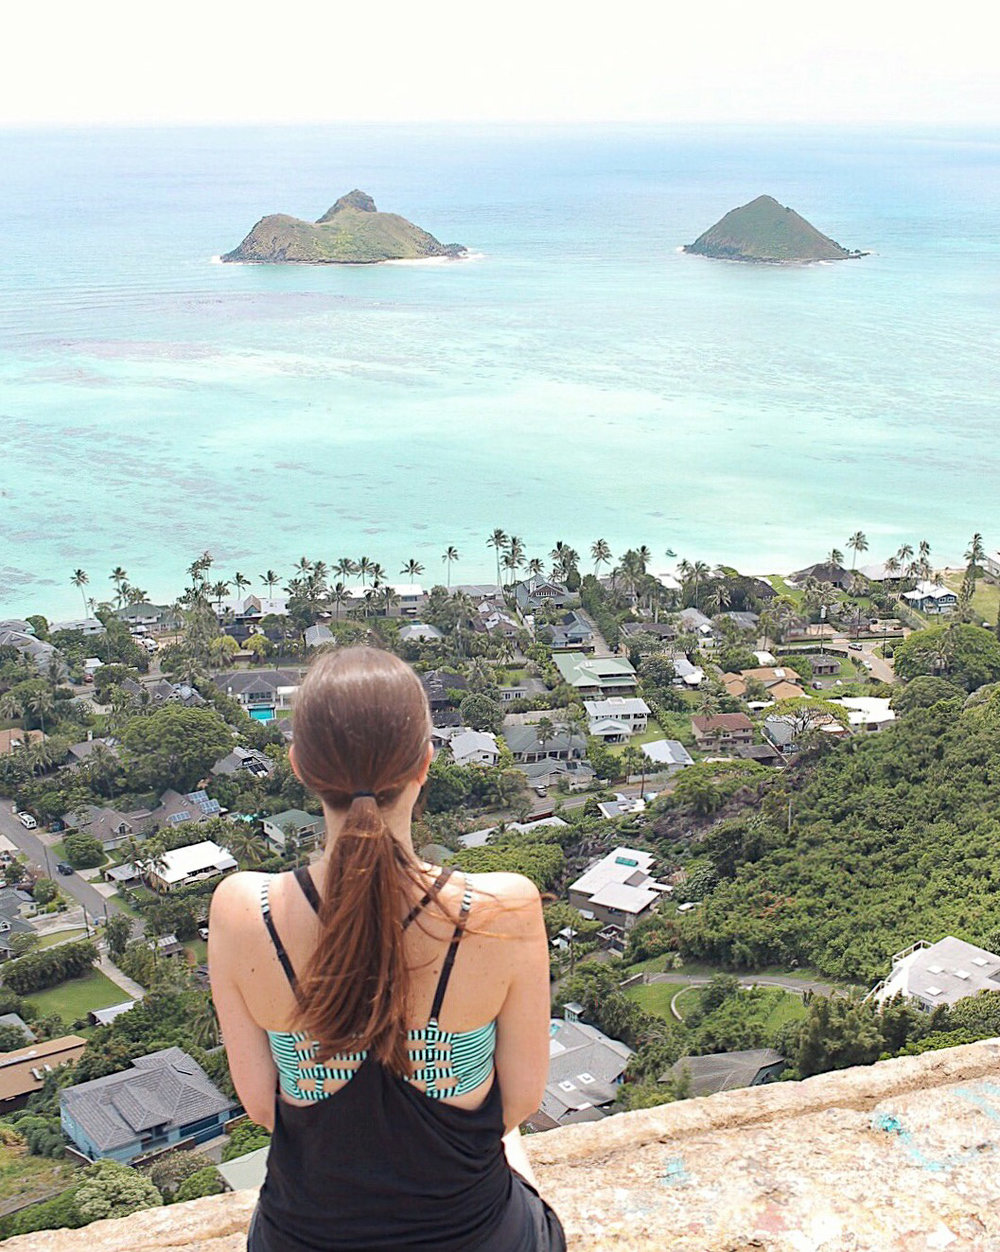 Views from the Lanikai Pillbox hike